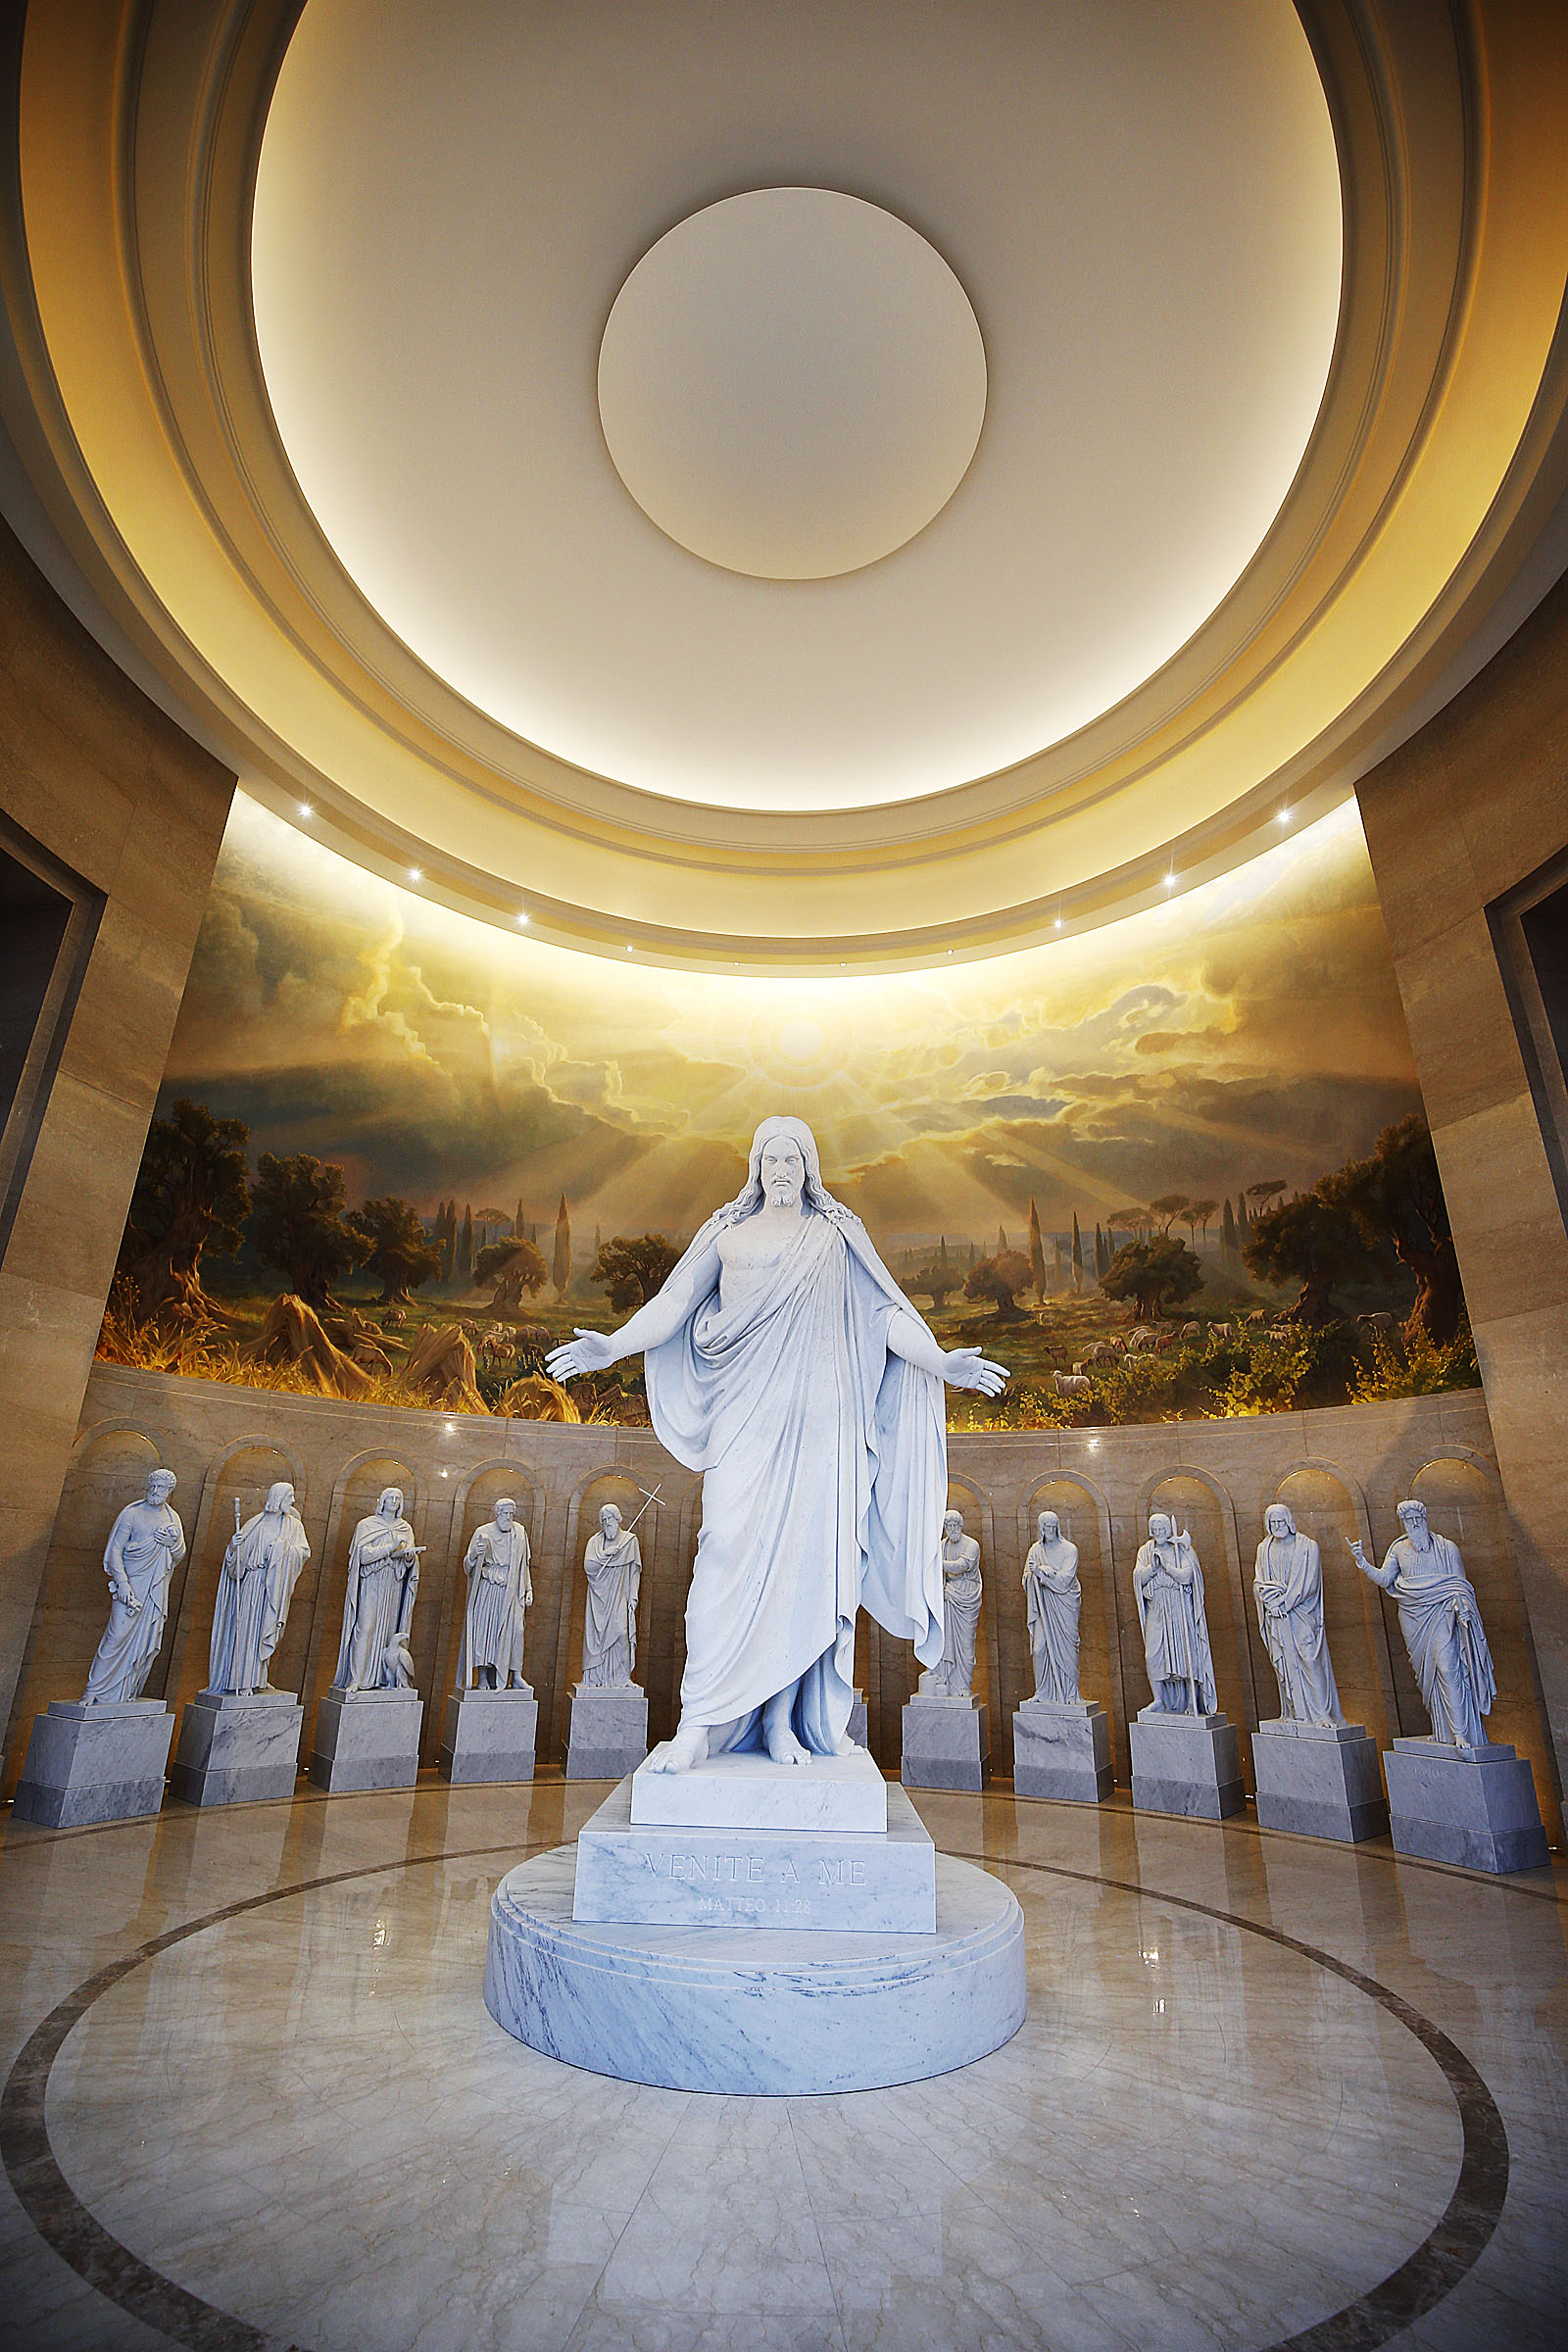 Statues of Christ and the apostles are displayed in the Rome Temple Visitors' Center of The Church of Jesus Christ of Latter-day Saints in Rome, Italy, on Sunday, Jan. 13, 2019.